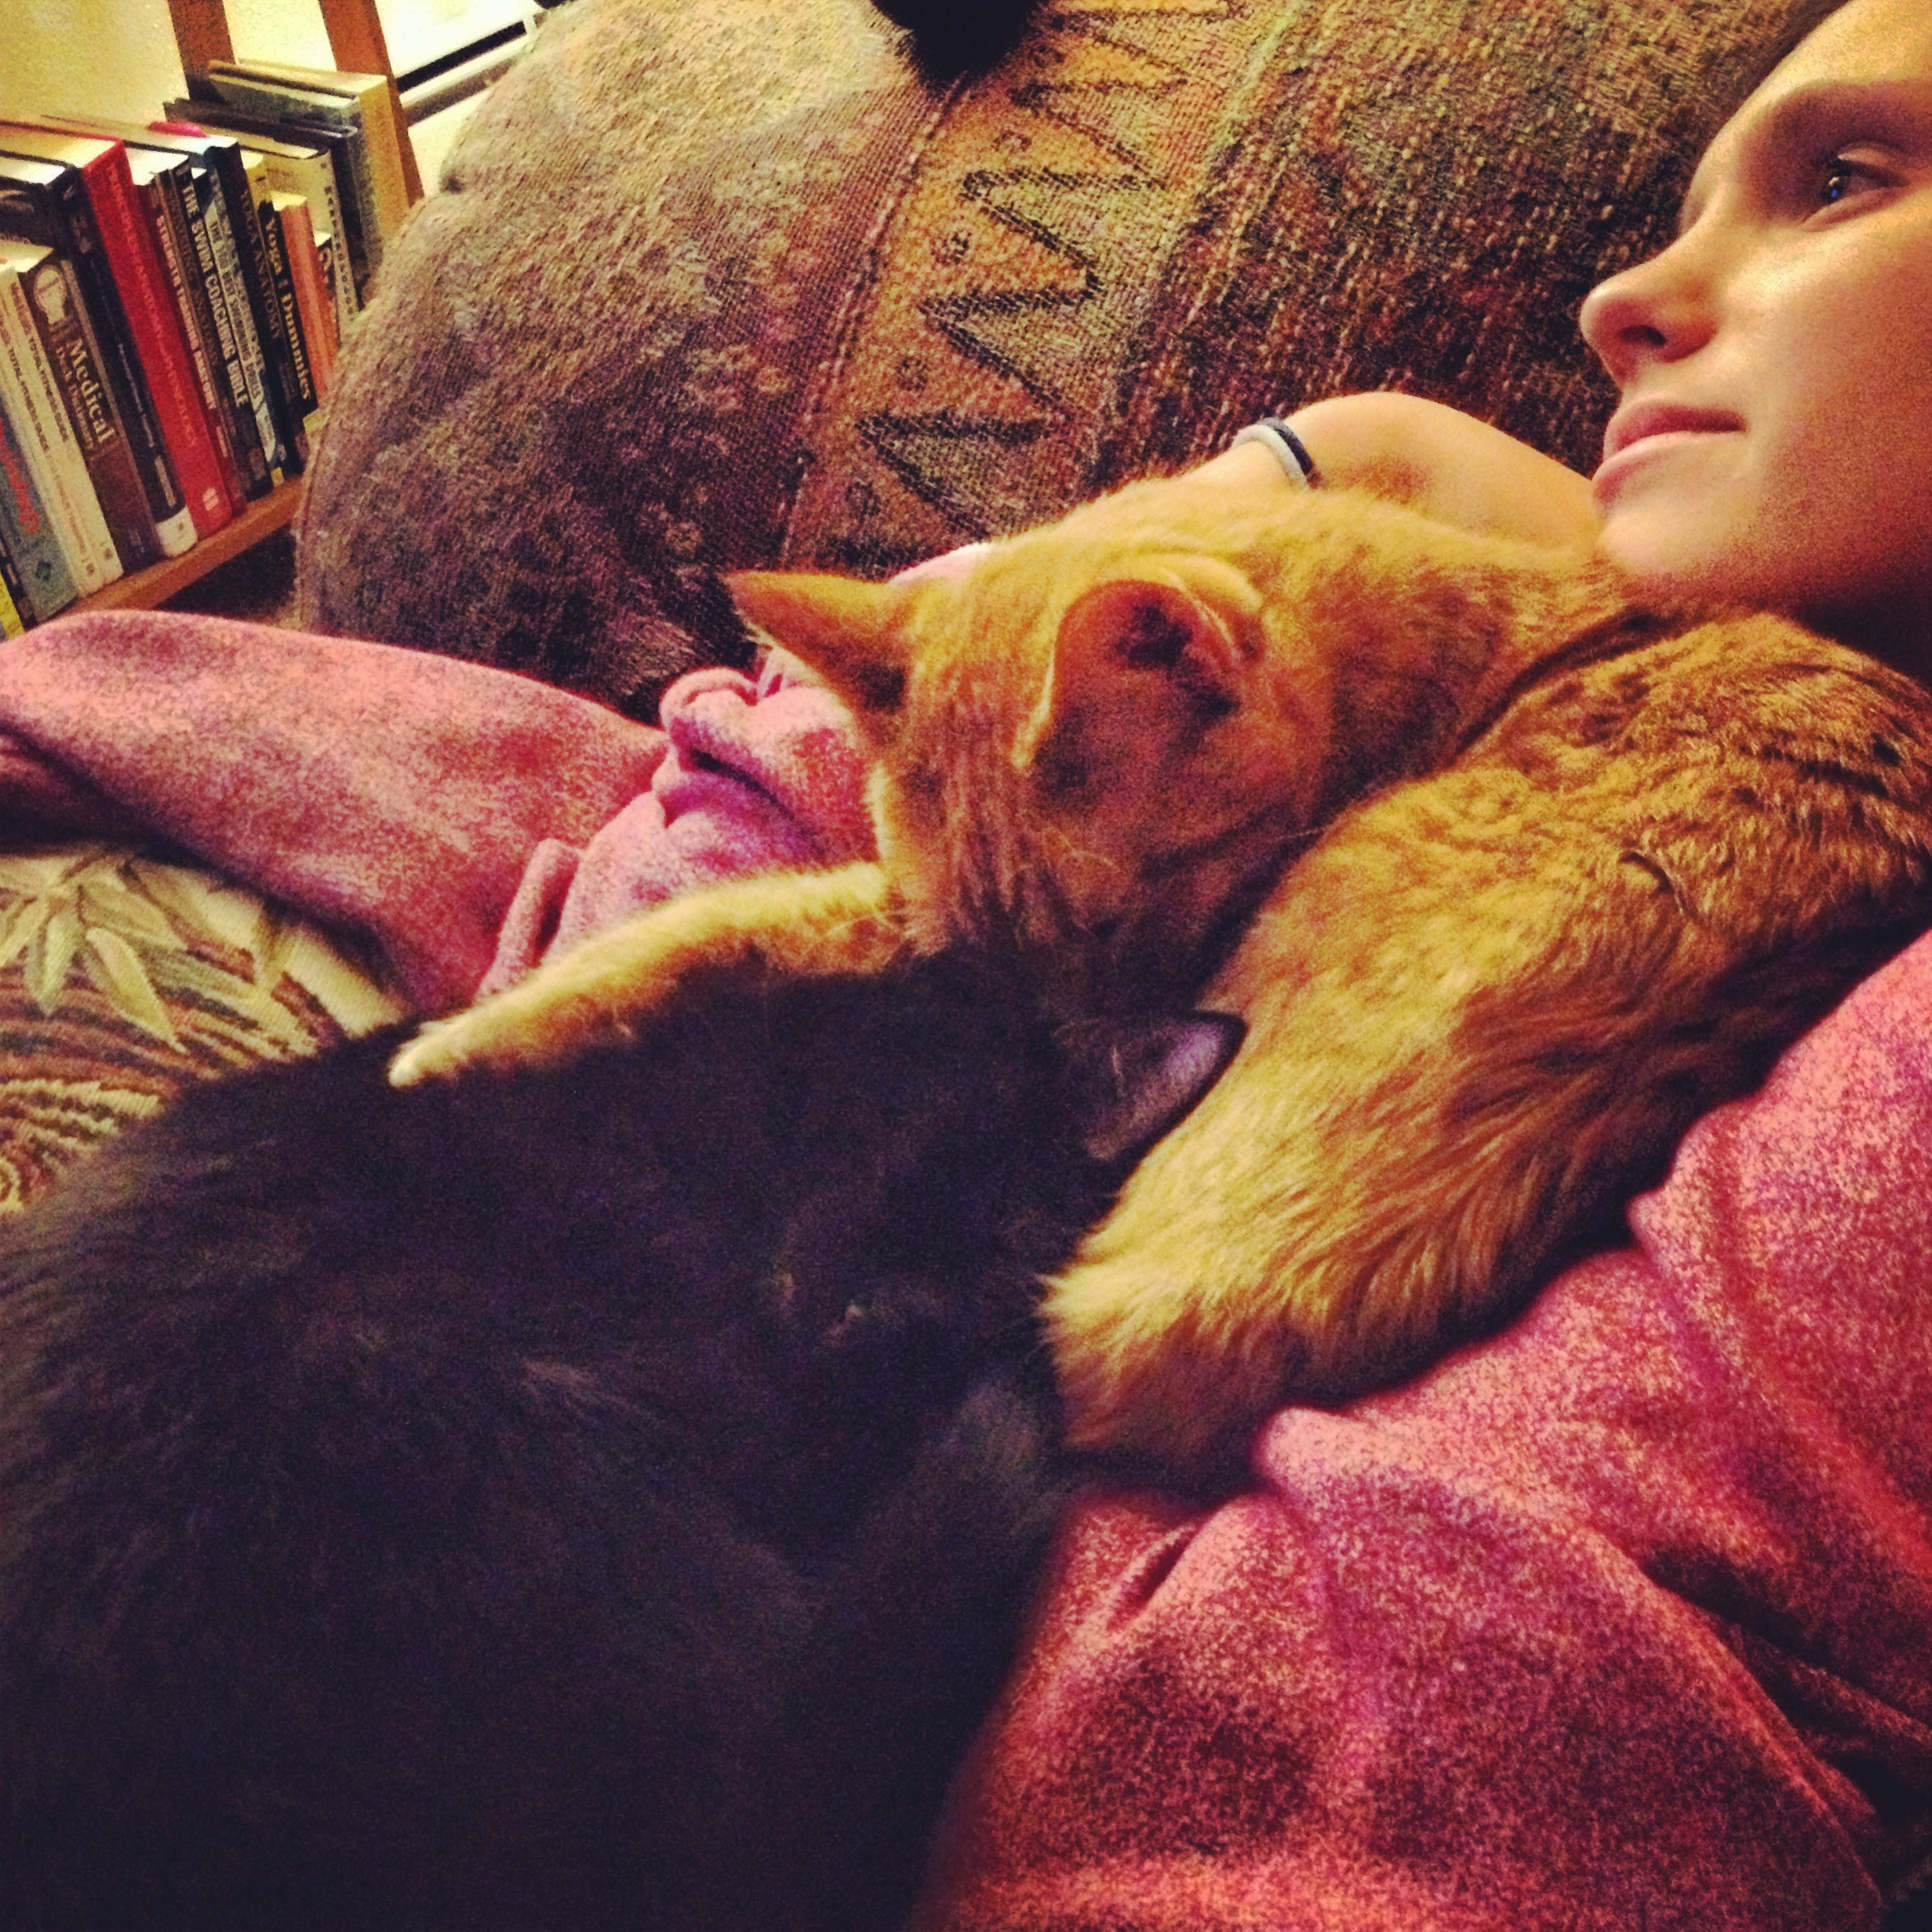 Kitty pile on Alana for Castle marathon!